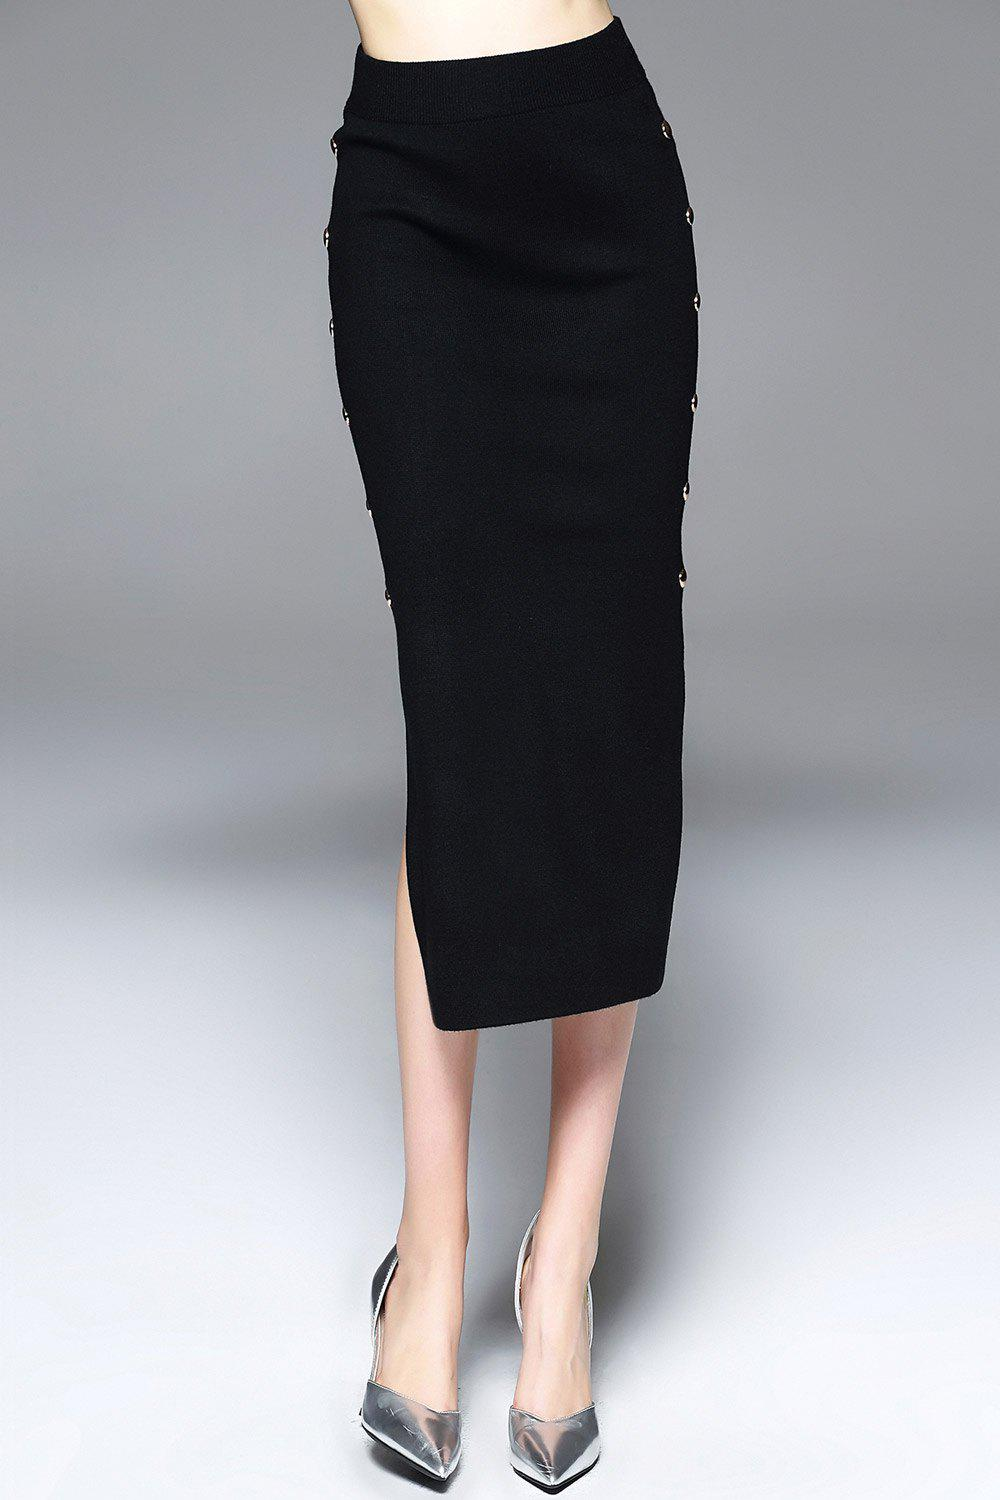 Affordable Side Slit Tea Length Jersey Skirt